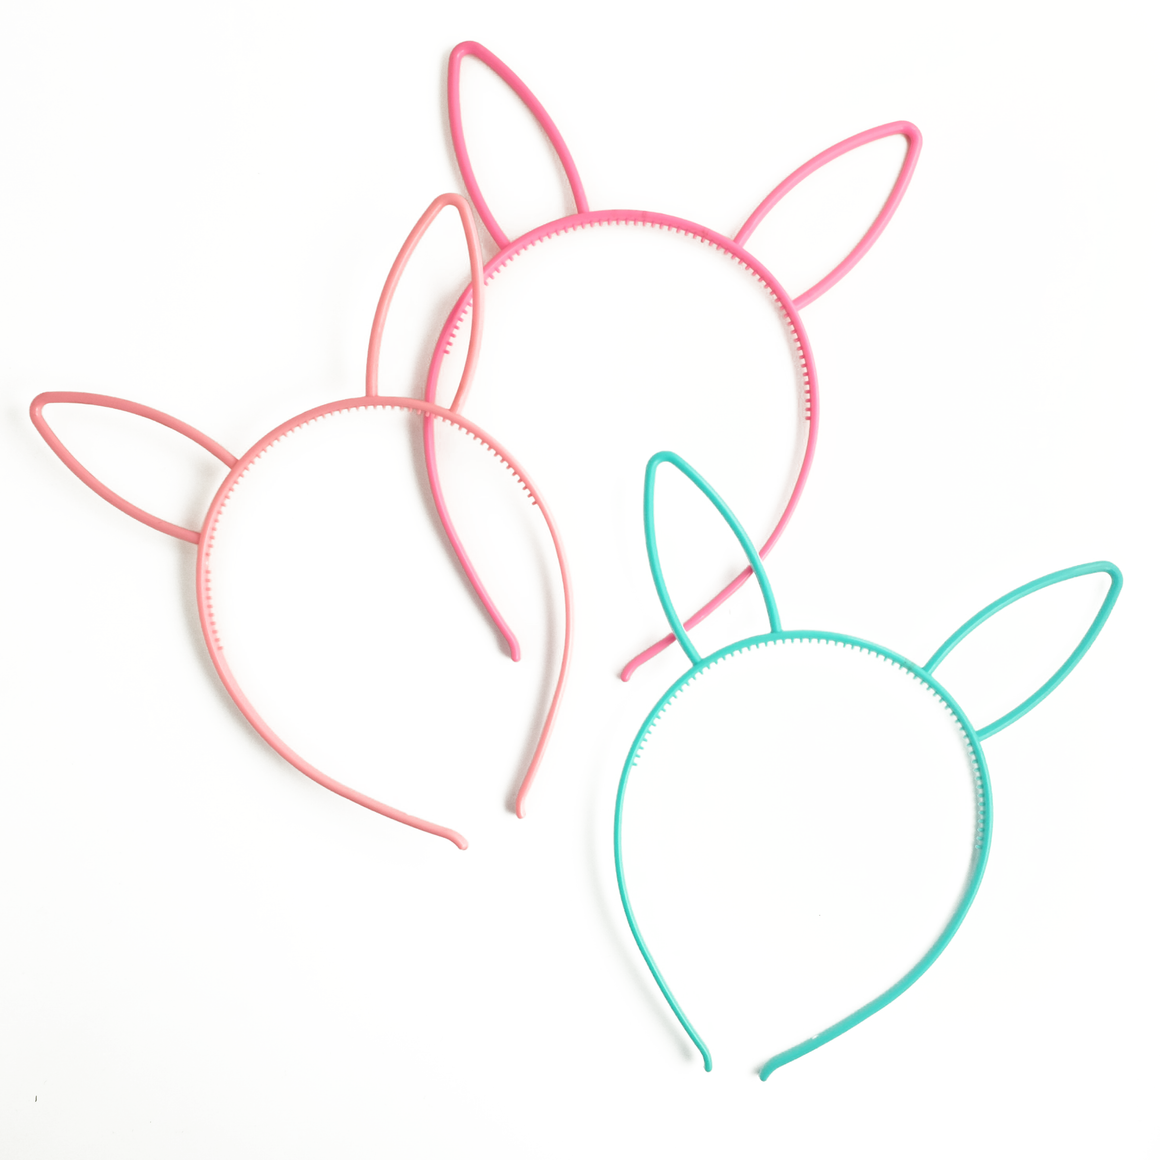 bunny headband (sample) // hello shiso hair accessories for girls